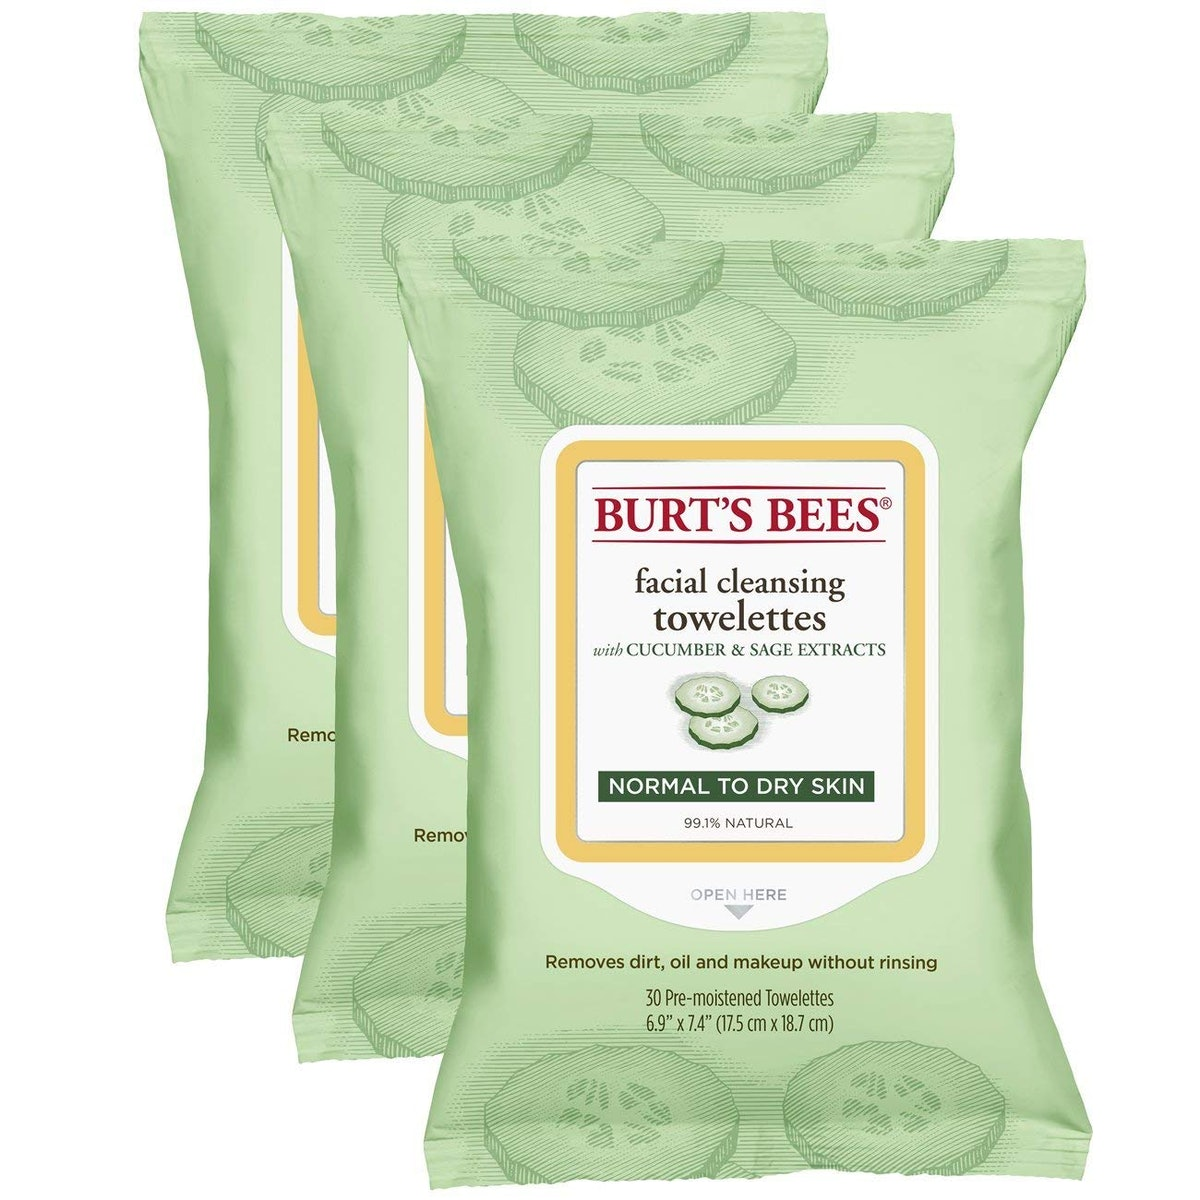 Burt's Bees Sensitive Facial Cleansing Towelettes (3 Pack)